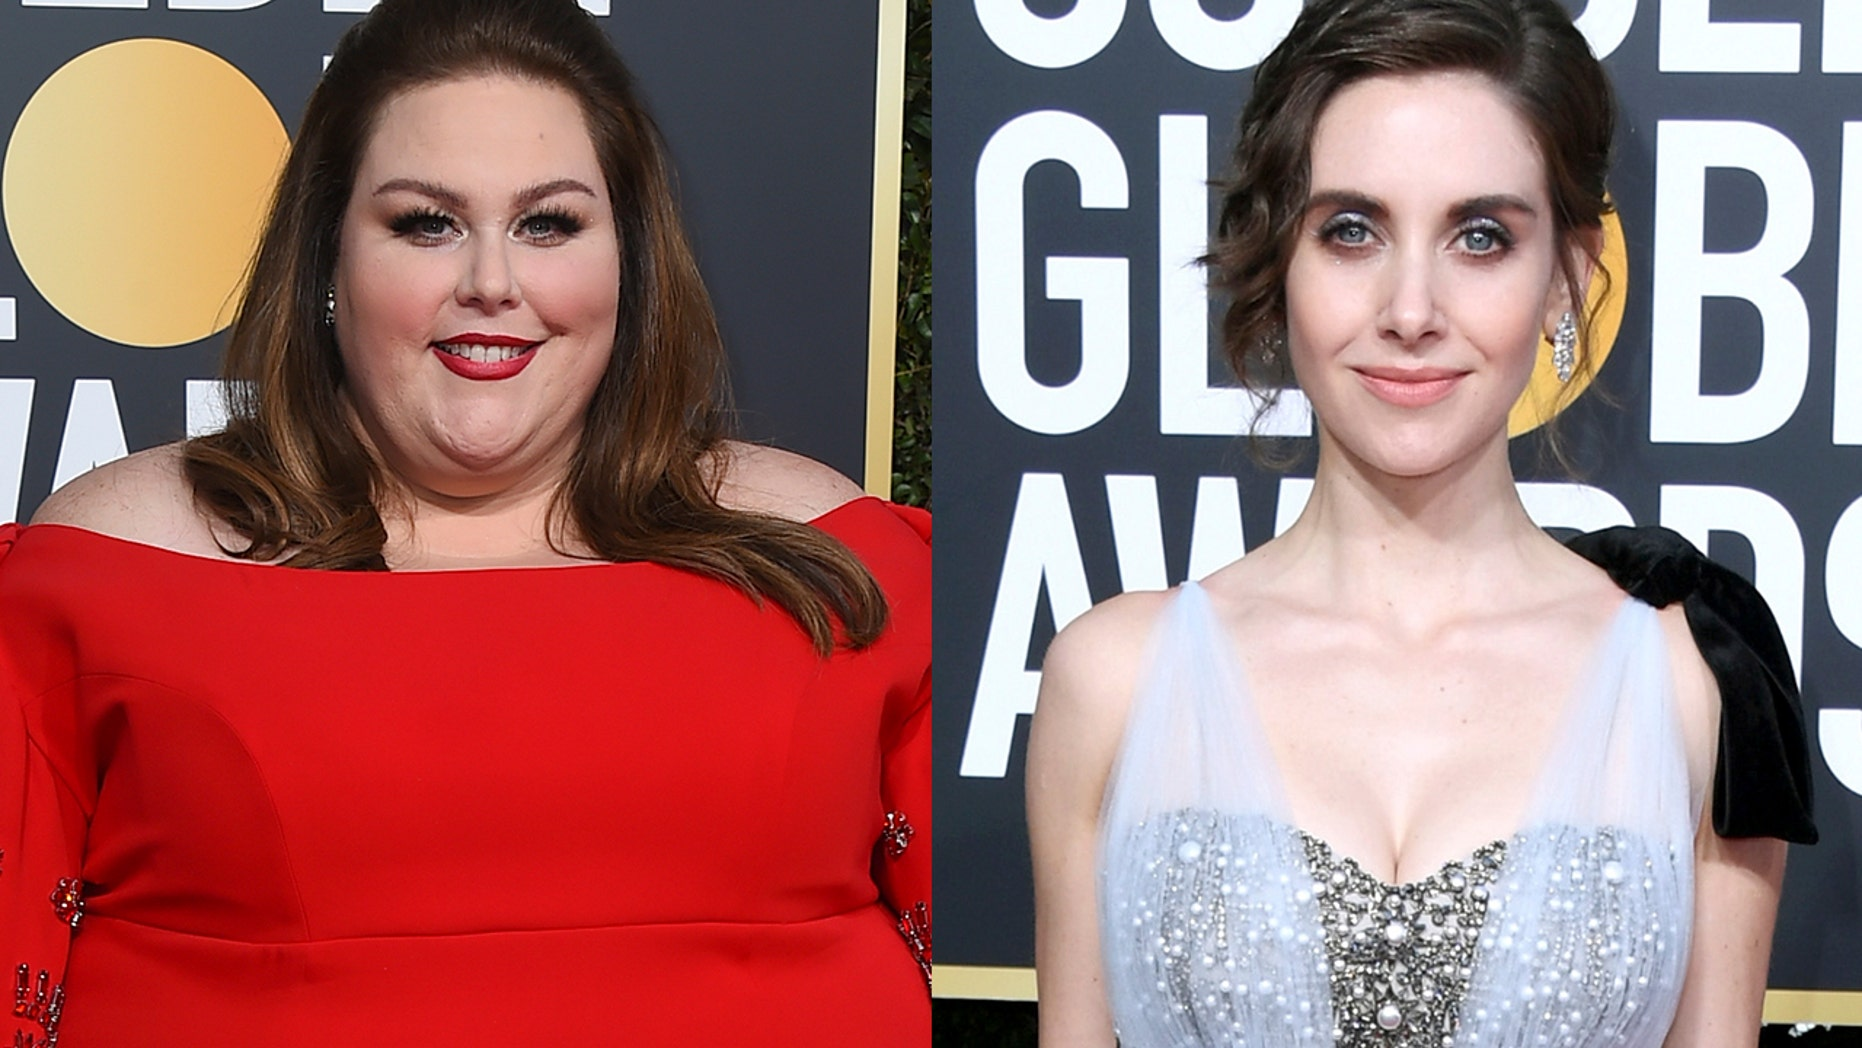 Chrissy Metz denies making Brie slur